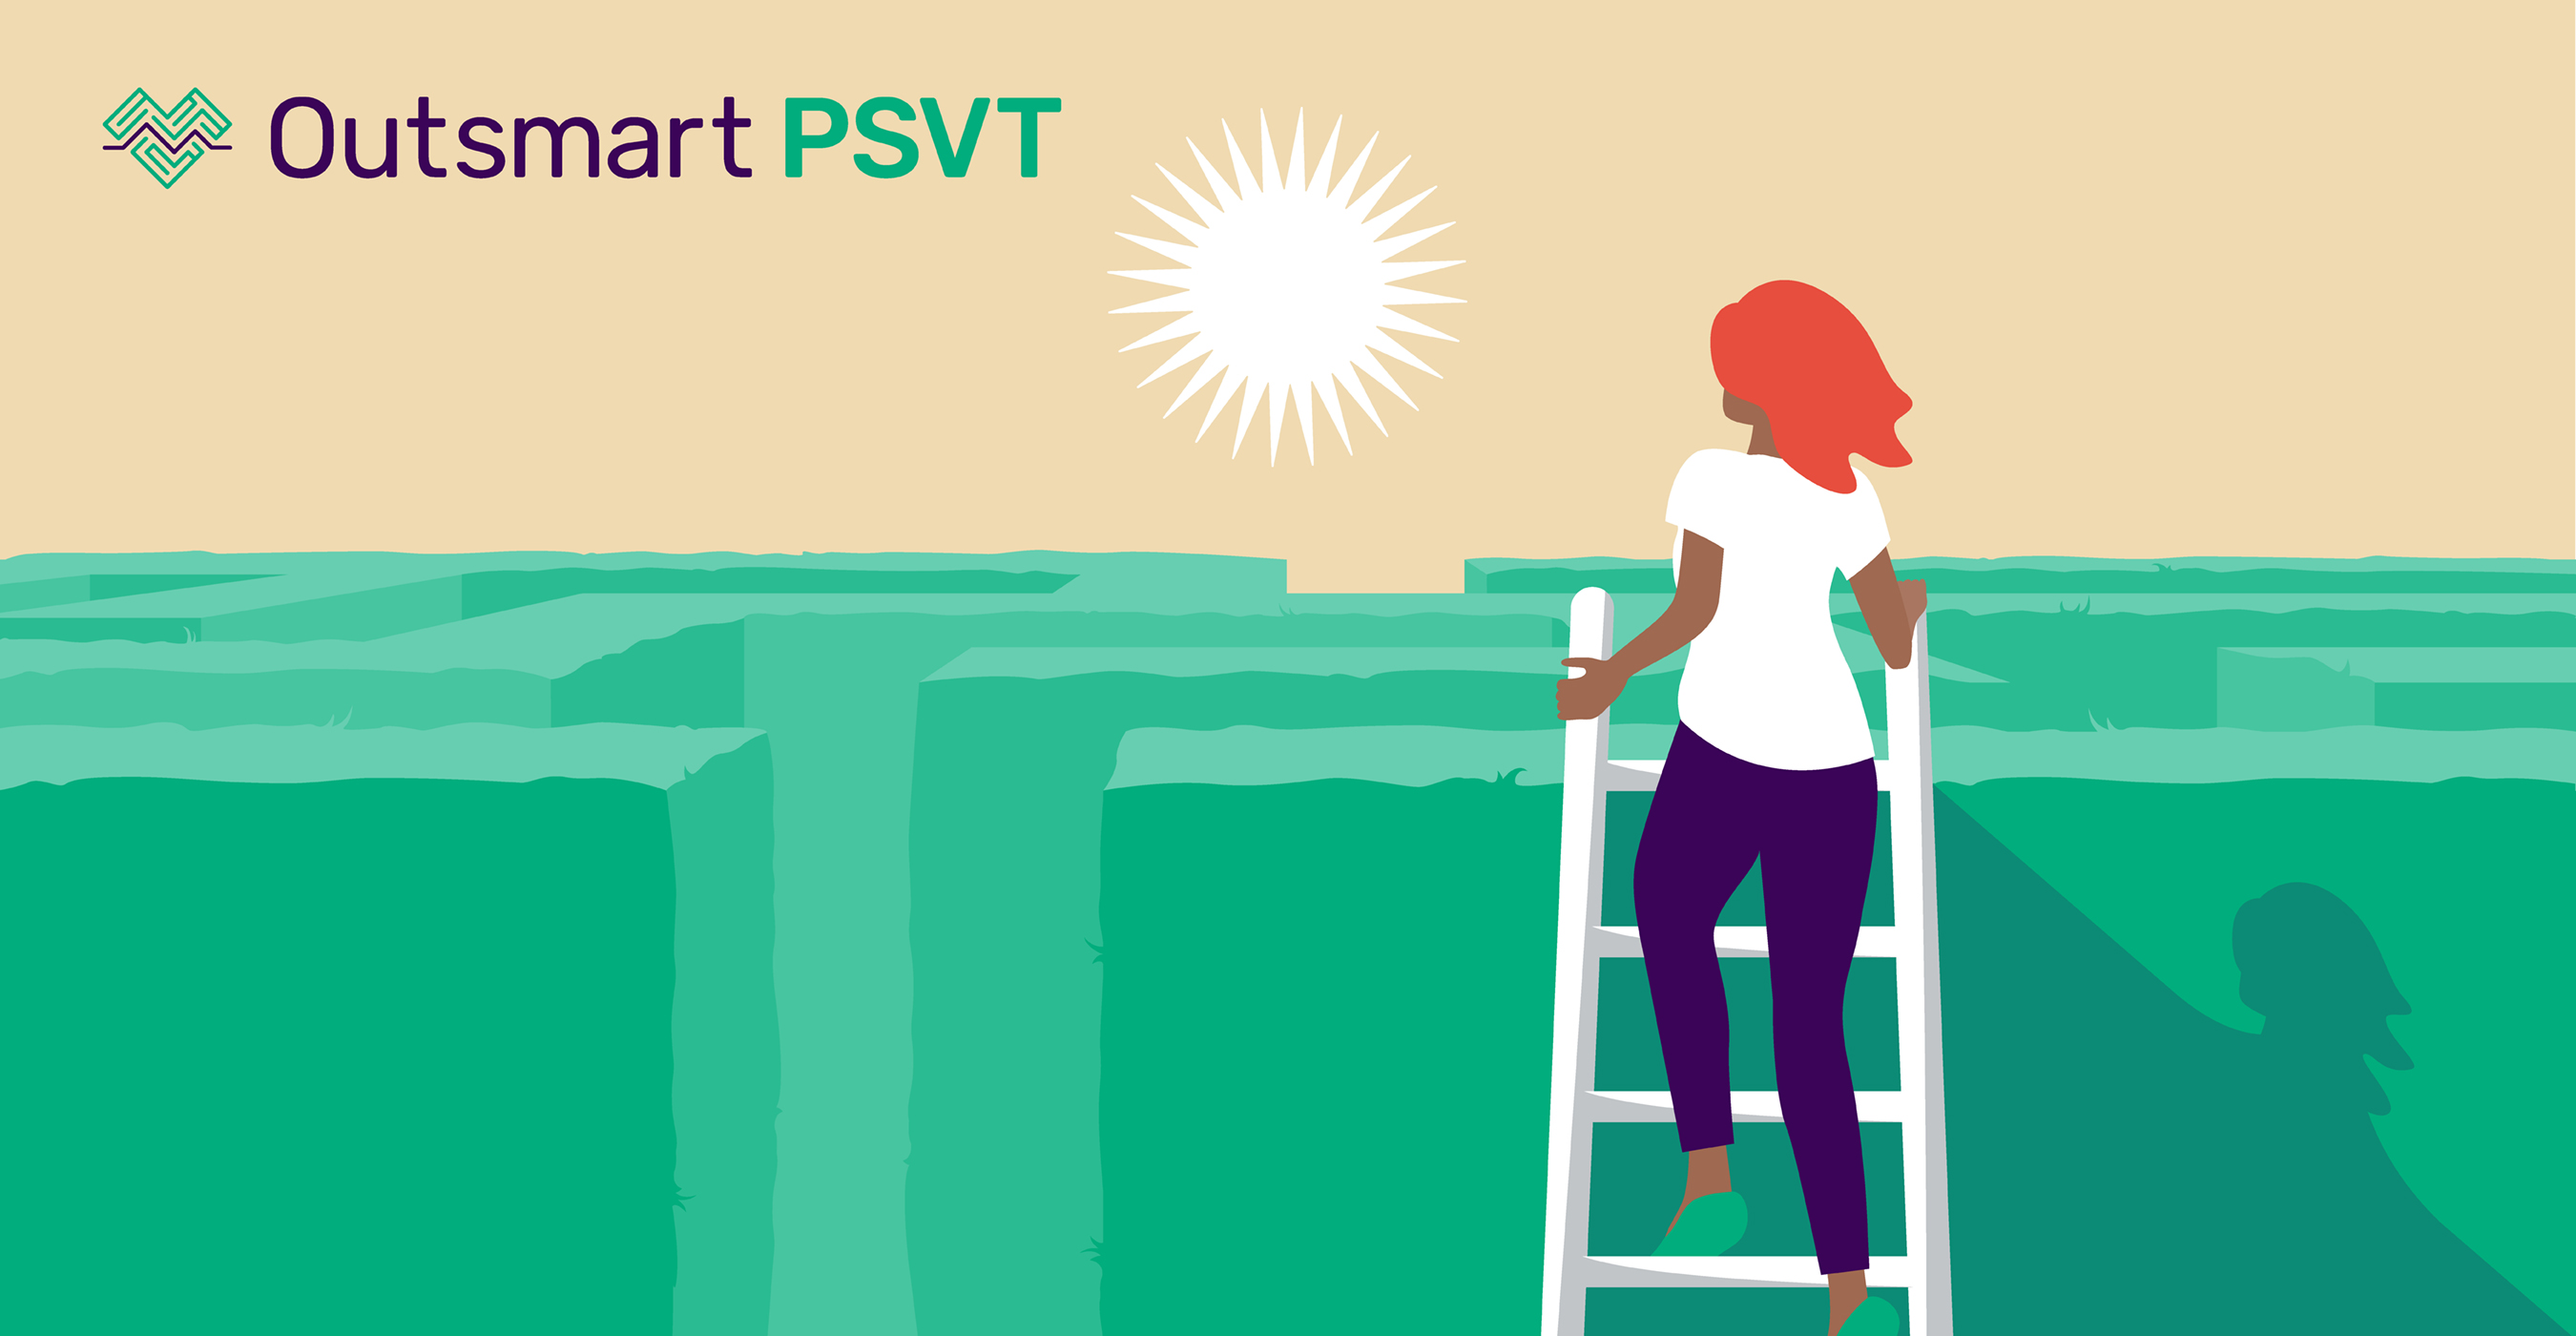 Learn how to #OutsmartPSVT so this #heart condition is no longer a significant source of #anxiety. Visit a new website to learn more: OutsmartPSVT.com